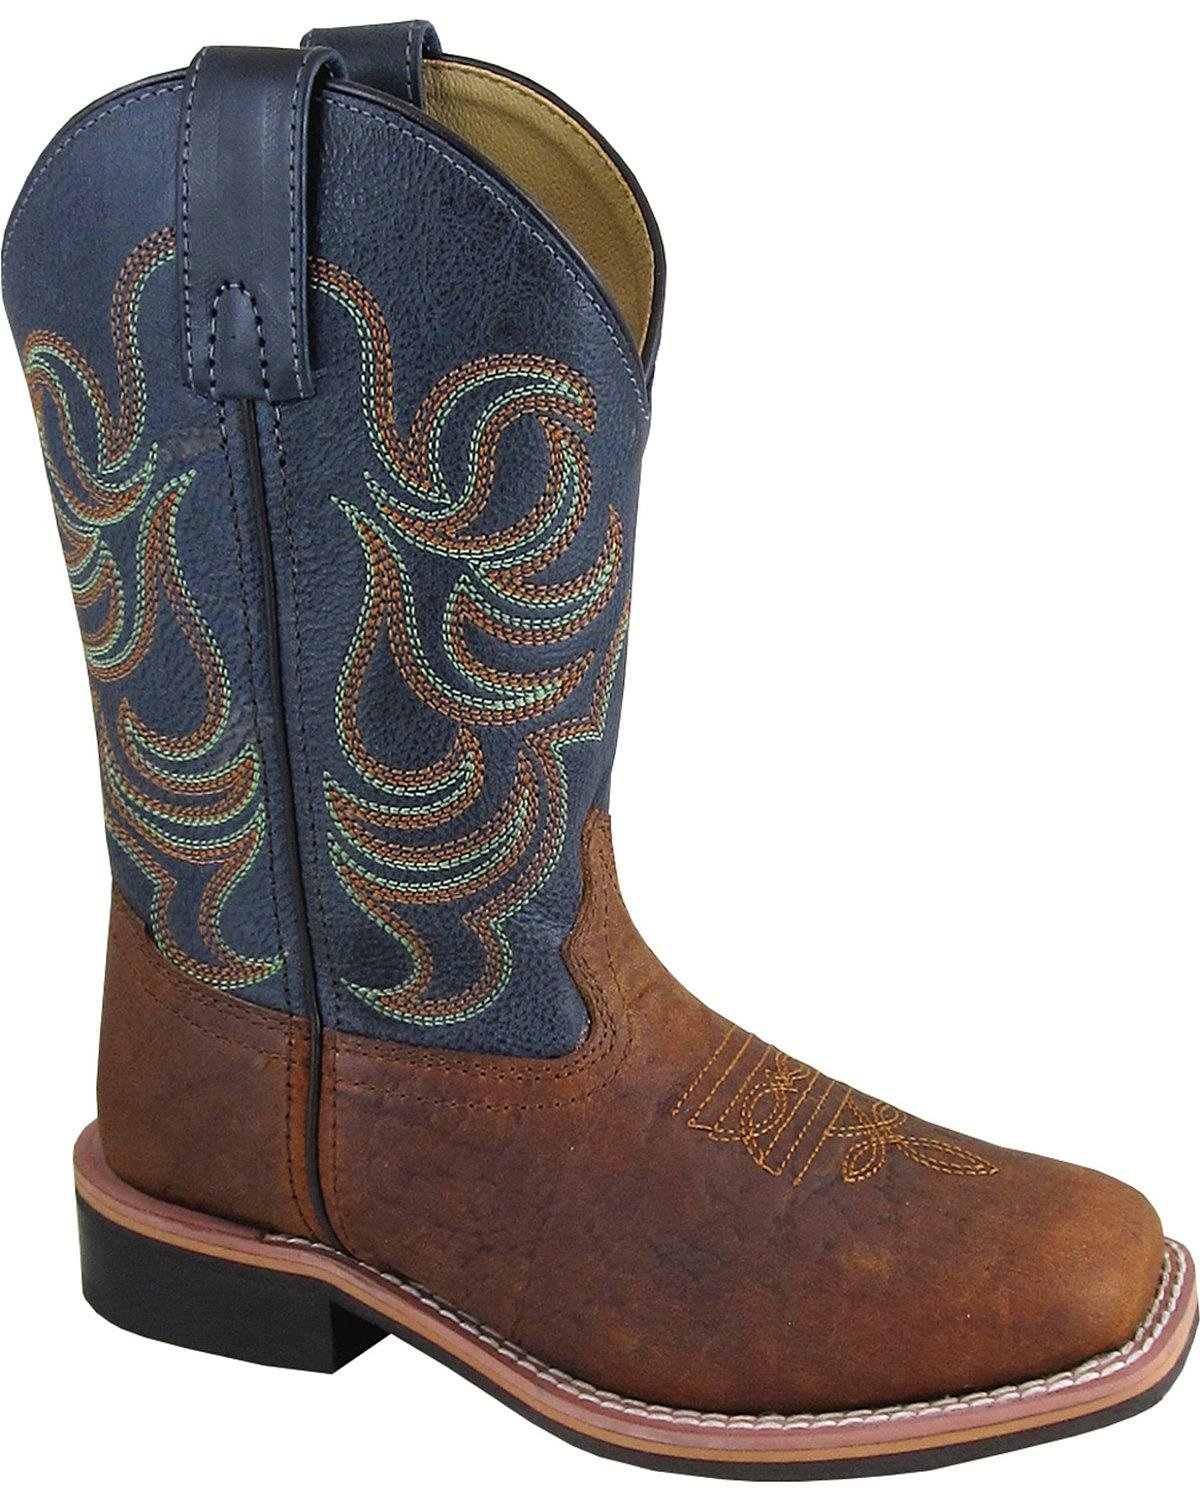 Smoky Mountain Boots Western Boys Jesse Square Toe Brown 3749 B077MTNLFZ 6.5 D|Brown